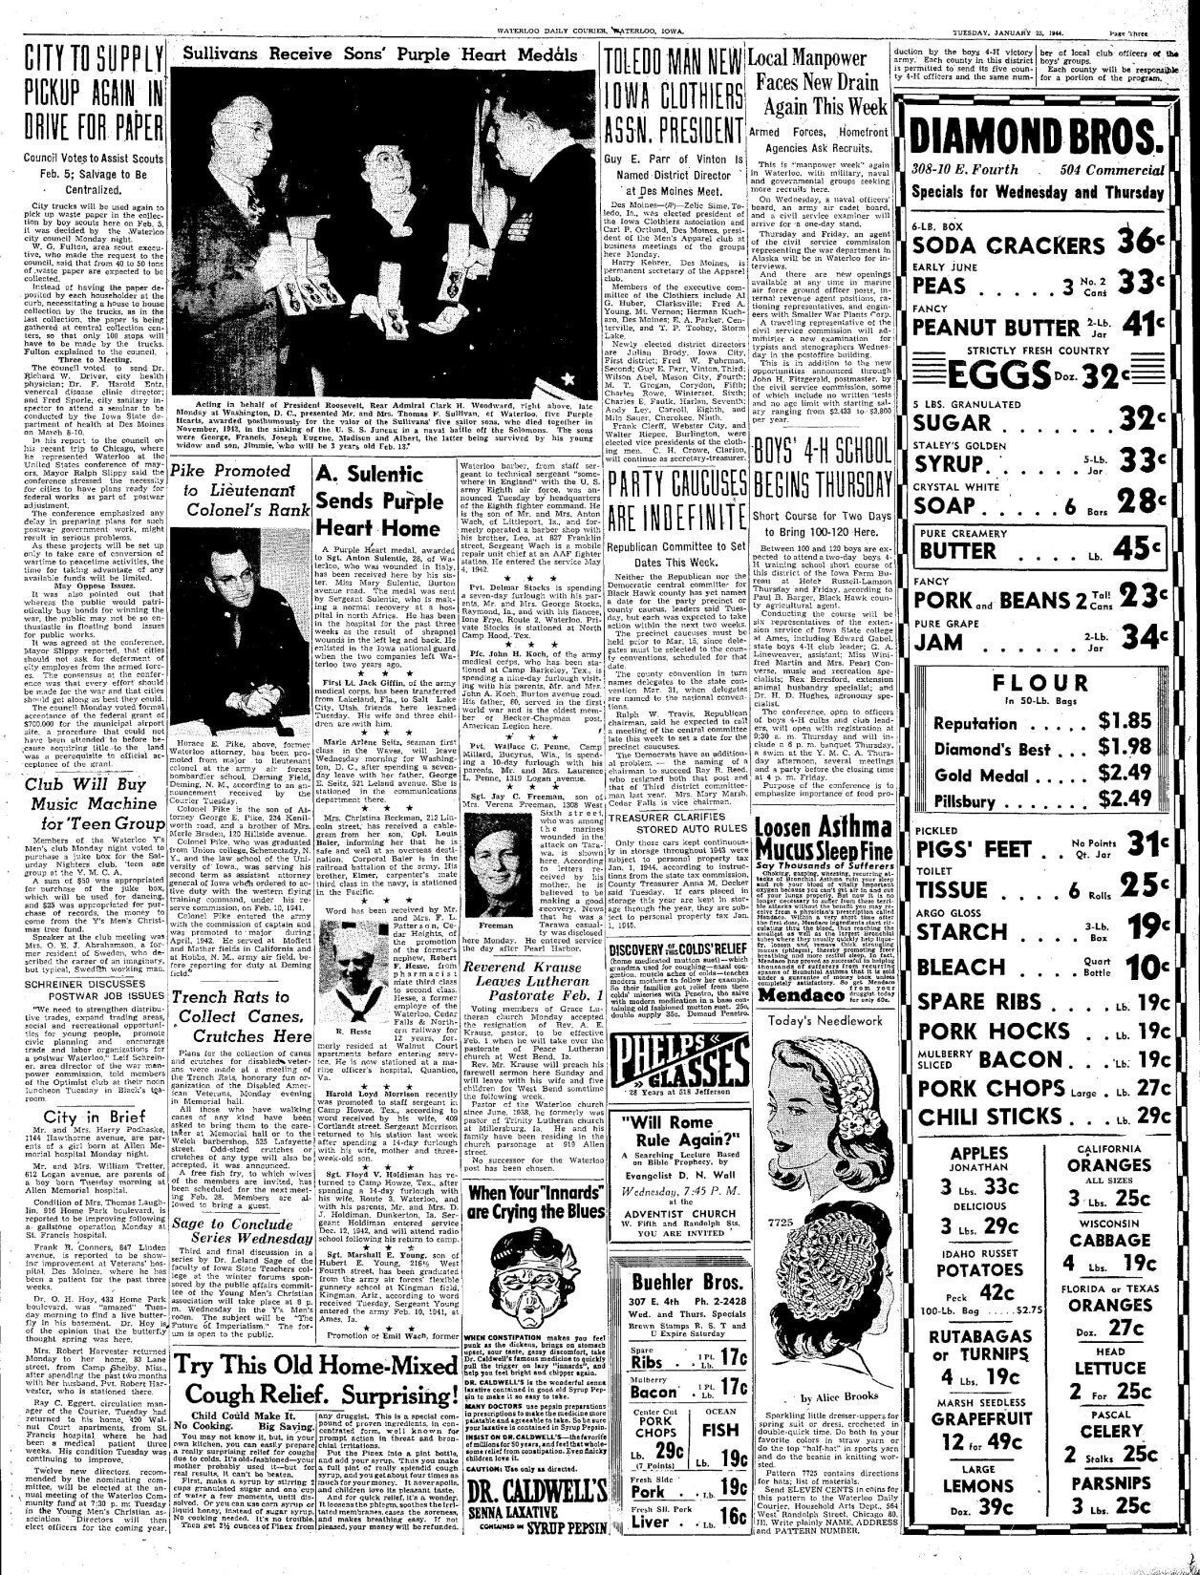 Courier Jan. 25, 1944